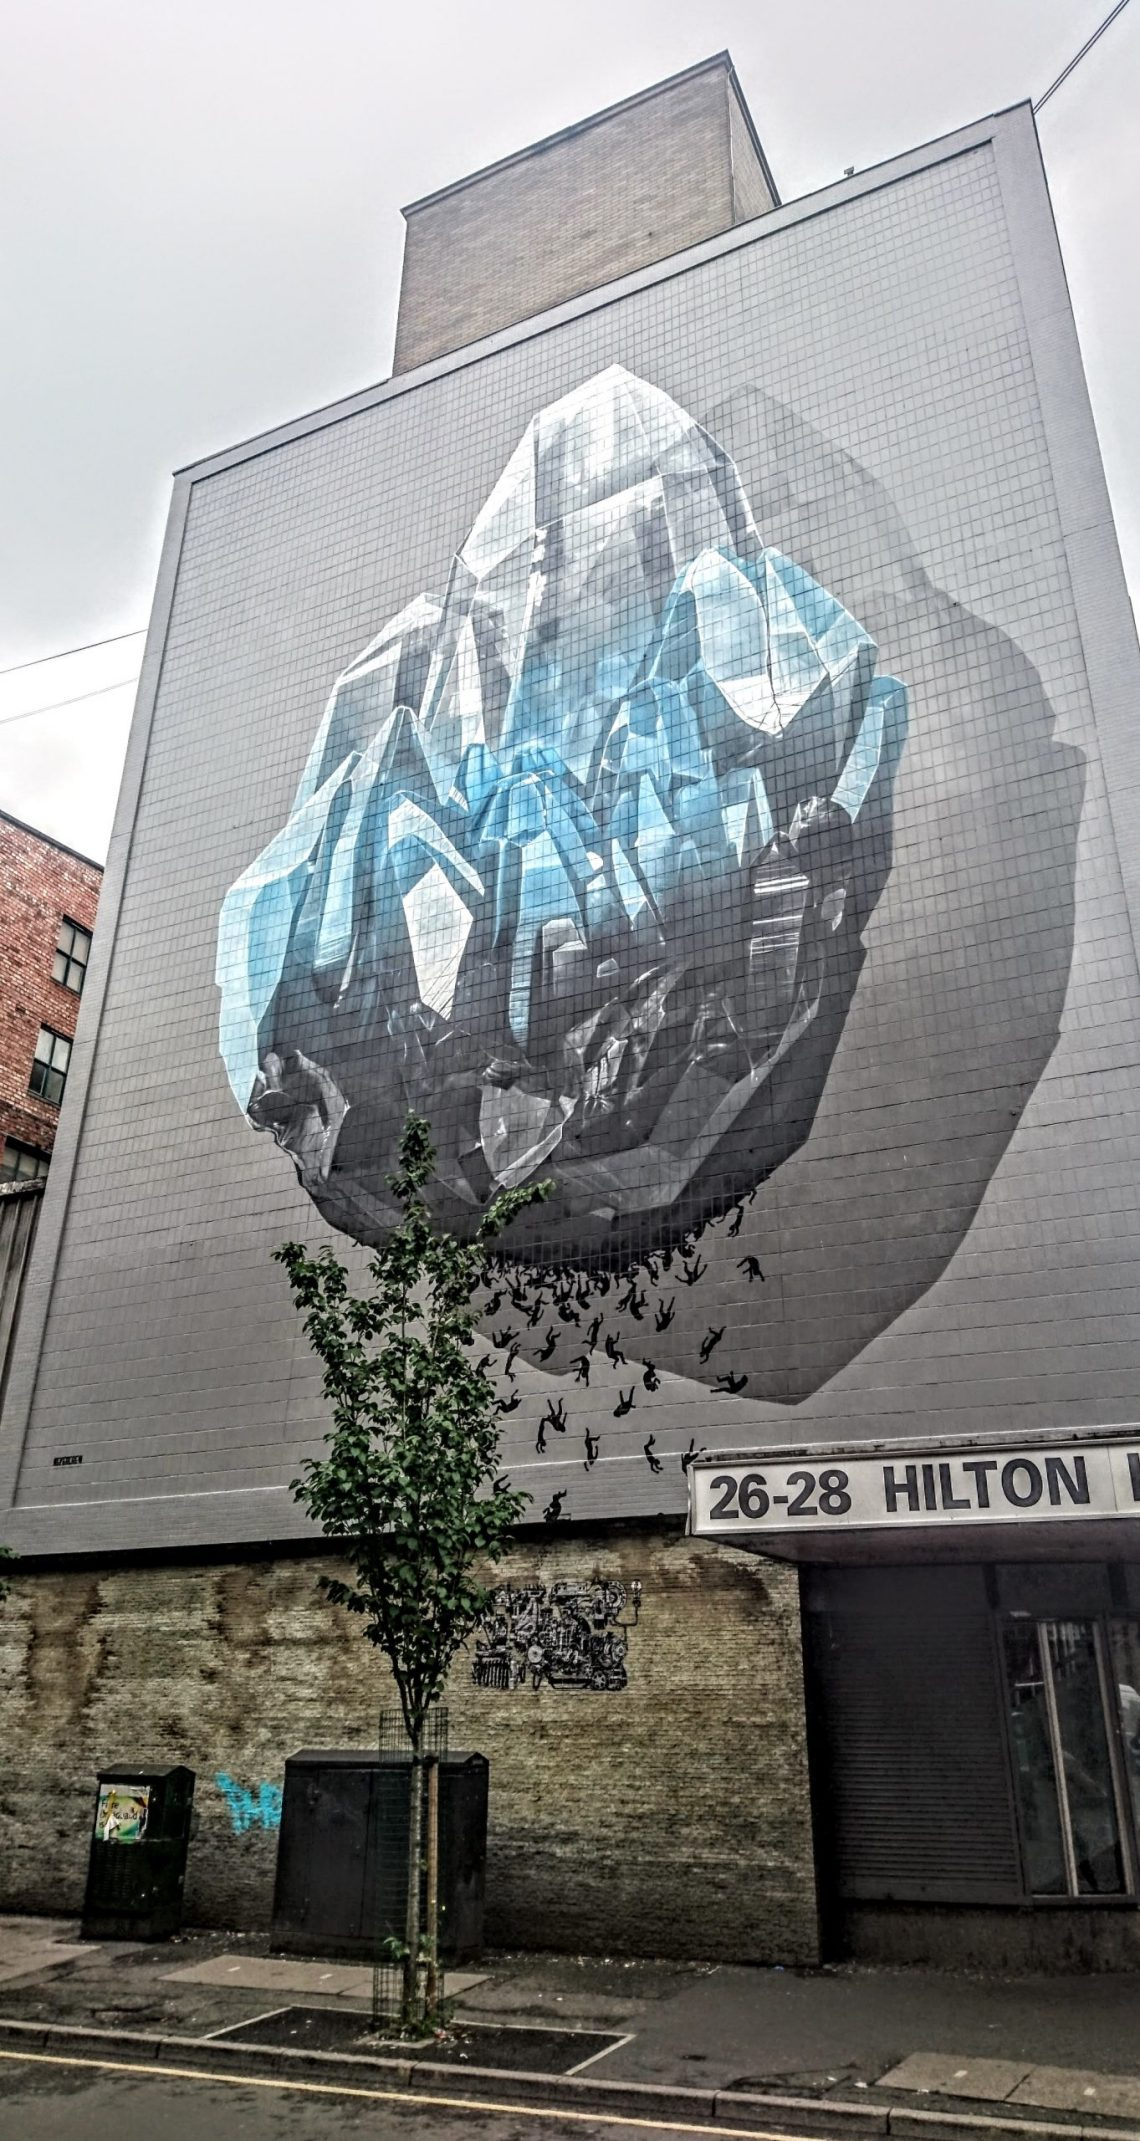 The mural by Never Crew on Tariff Street. This was painting as part of Manchester's Cities of Hope Festival